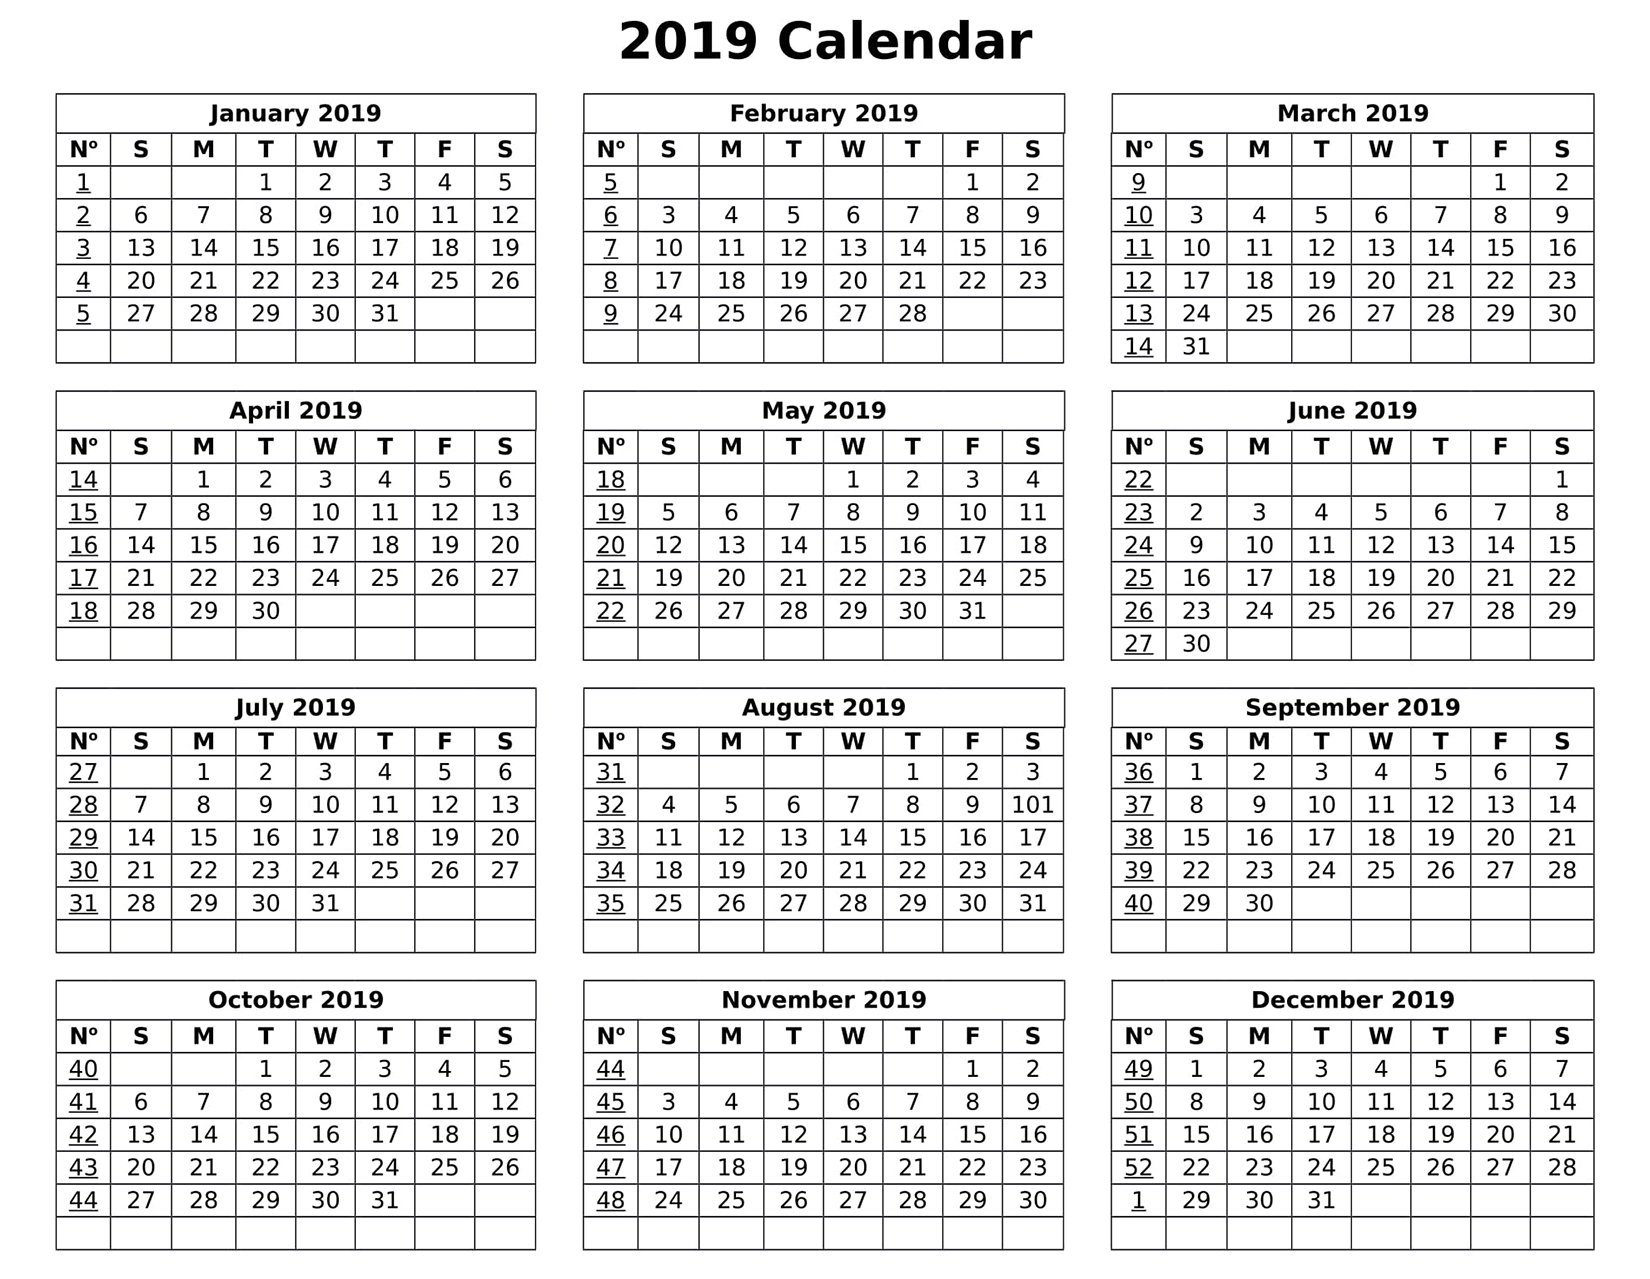 Full Year Calendar For 2019 – Free Calendar Templates & Worksheets Calendar 2019 Entire Year